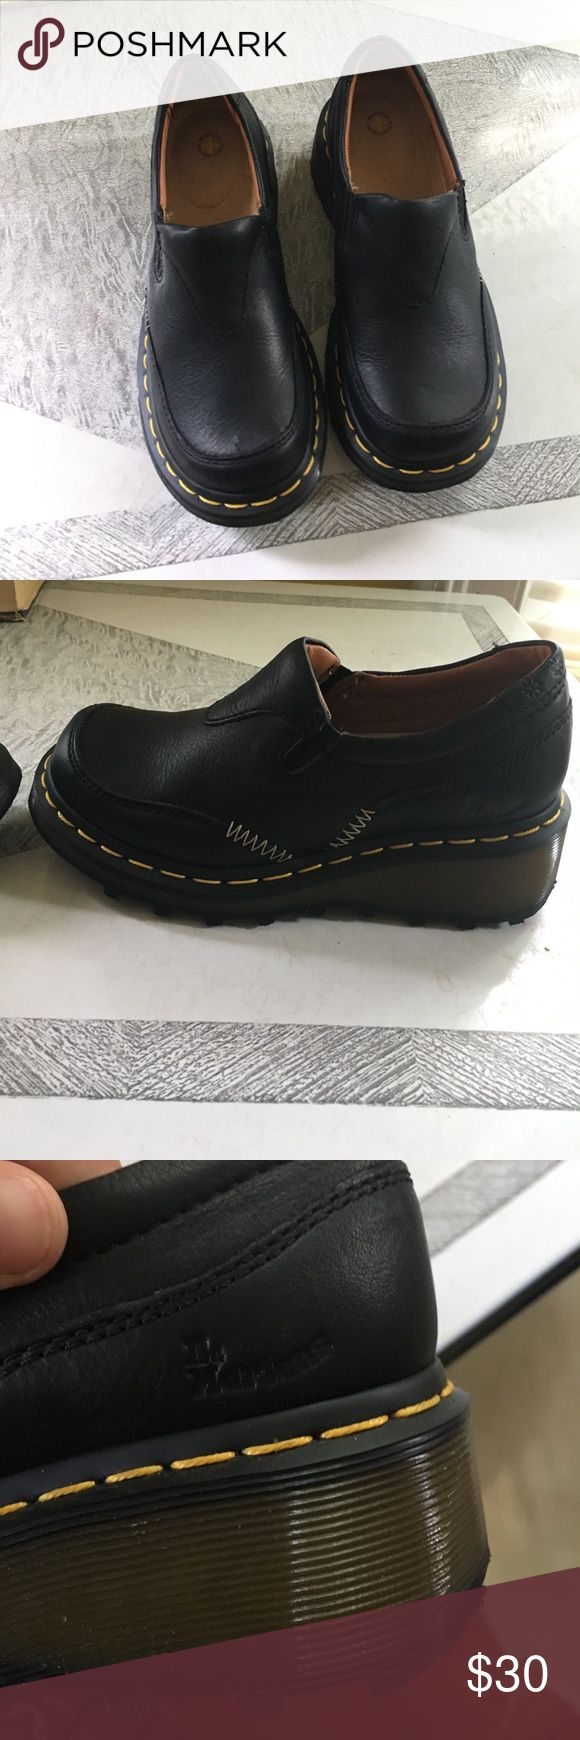 Dr martens shoes kids size 4. Never worn. There are numbers on the bottom from the store. No box. Kids size 4. dr martens Shoes Dress Shoes